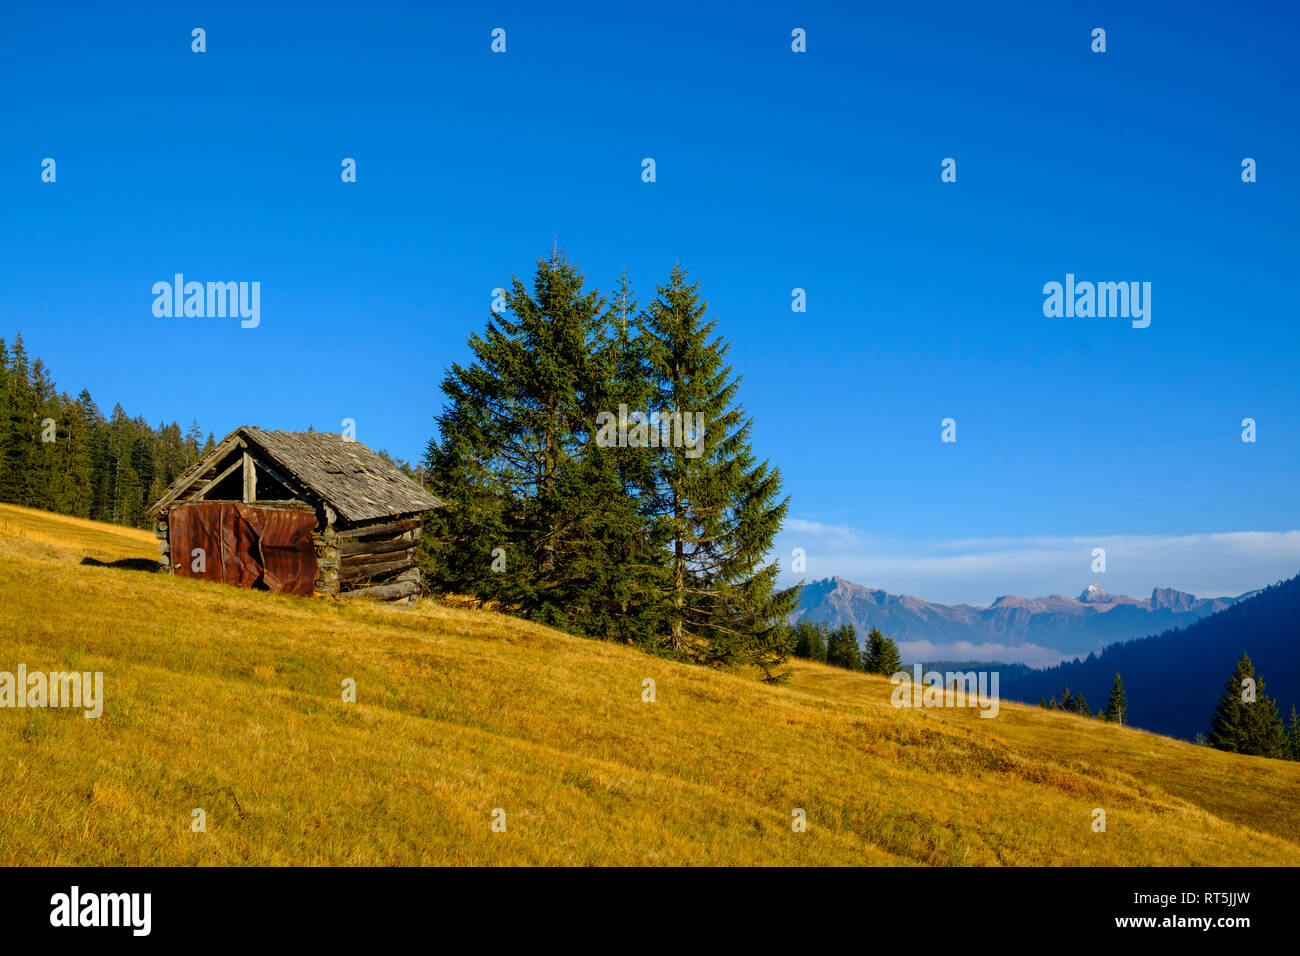 Germany, Bavaria, Swabia, Allgaeu Alps, Oberallgaeu, near Grasgehren, small hut and Hochvogel mountain - Stock Image